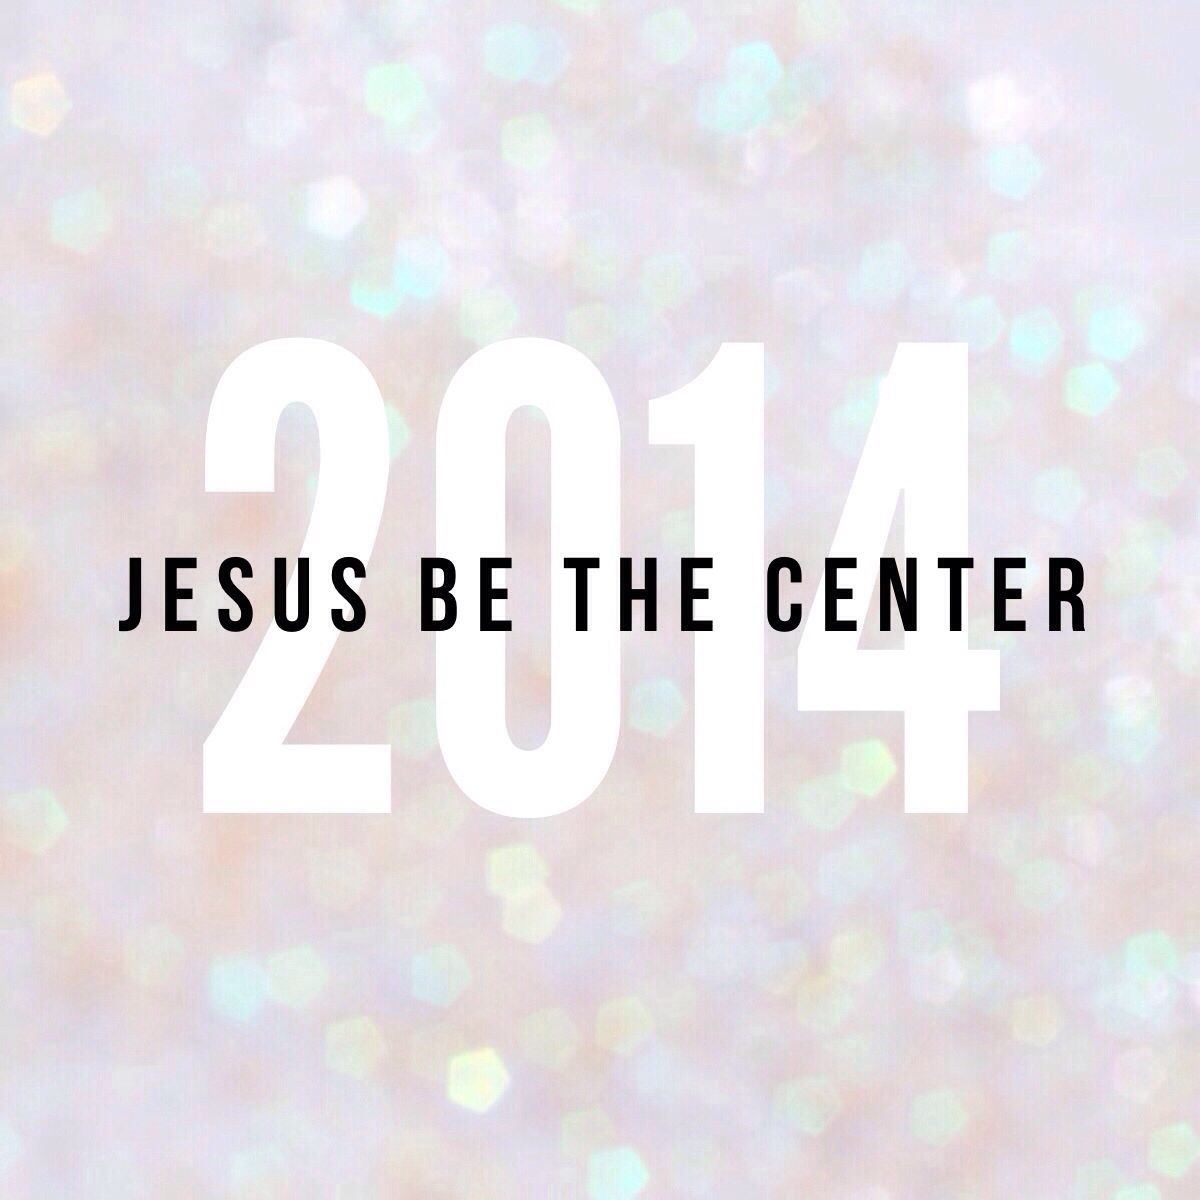 Happy New Year | A bit of wisdom | Pinterest | Wisdom, Proverbs and ...